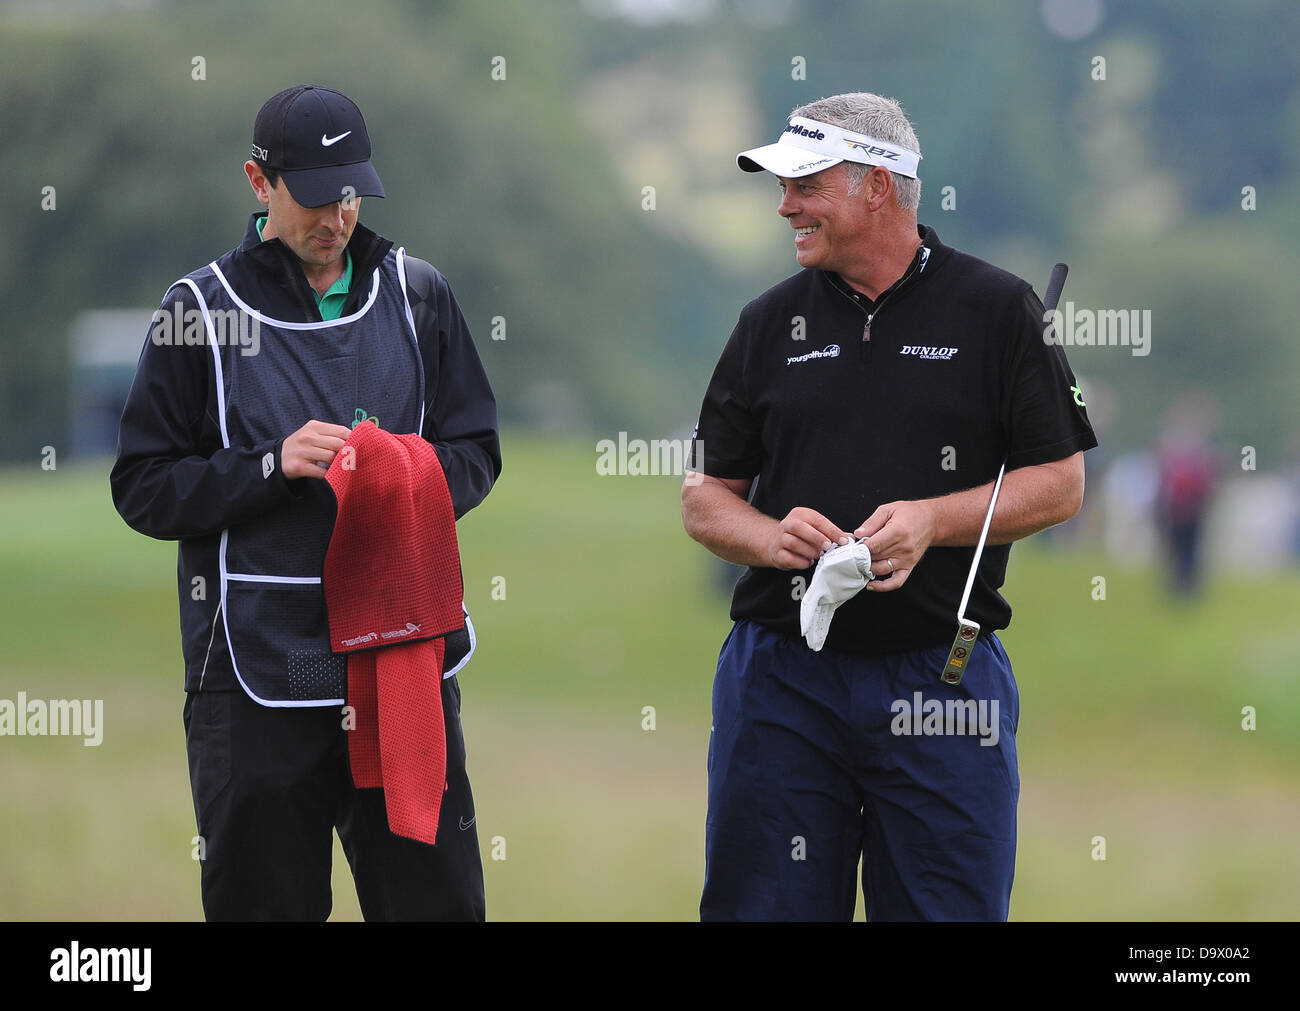 Maynooth, Ireland. 27th June 2013. Darren Clarke on the third hole during the first round of the Irish Open from - Stock Image